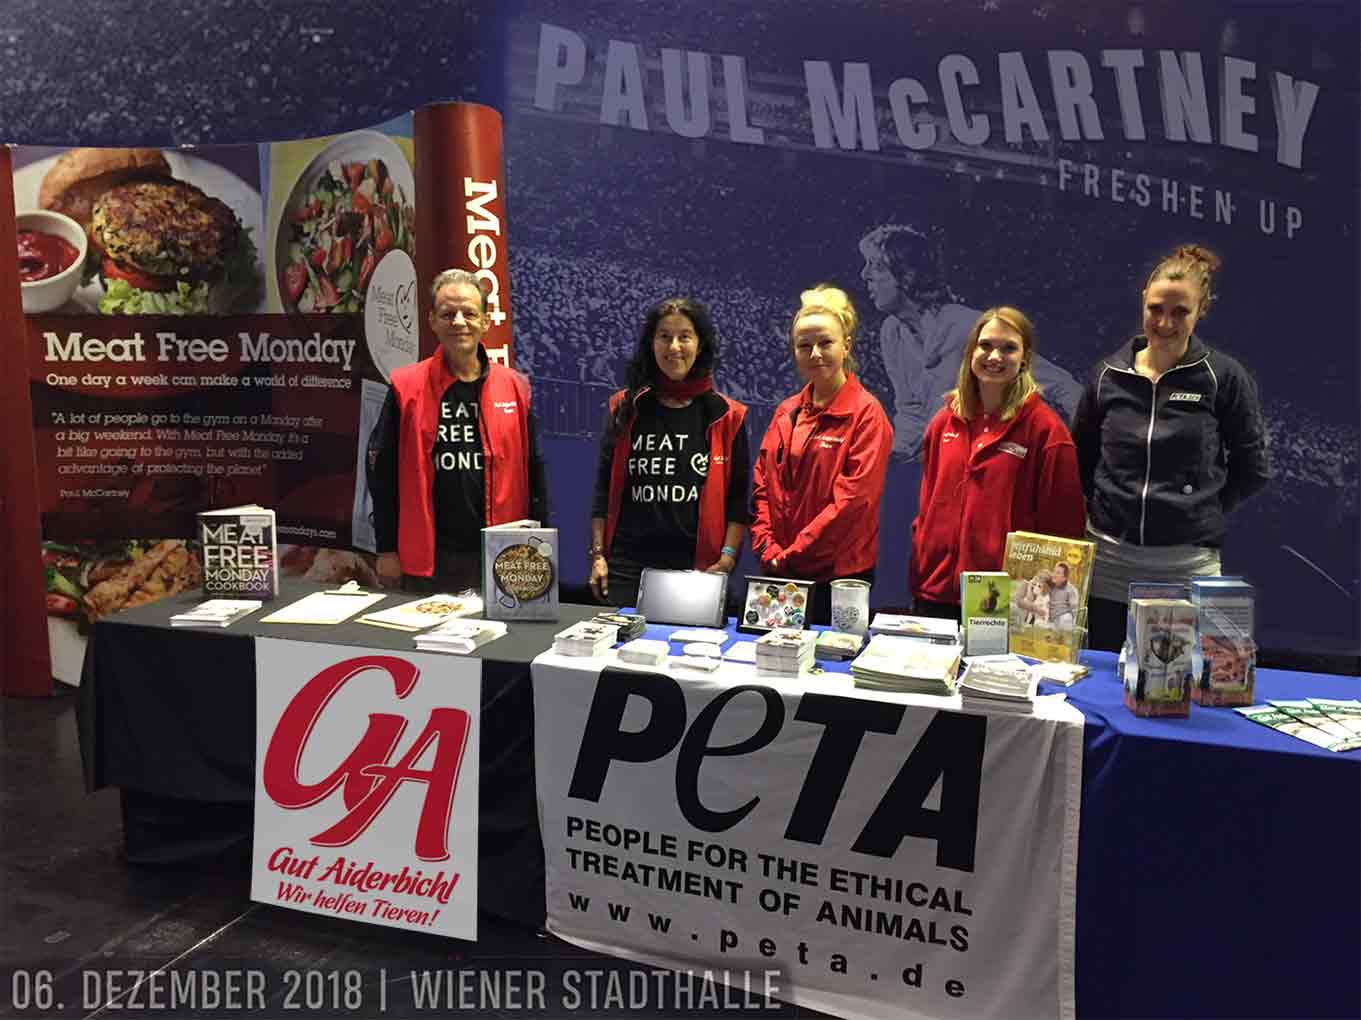 Ursula DEMARMELS, Univ.-Prof. Dr. Gerhard W. HACKER and representatives of Gut Aiderbichl and PETA running the MeatFreeMondays-stand at Paul McCartney's concerts of the Wiener Stadthaltte. Dec.6, 2018. (c): Dr. Gerhard W. Hacker, Salzburg. Used by agreement with Barracuda Music, Vienna, Gut Aiderbichl, PETA Germany & www.meatfreemondays.com